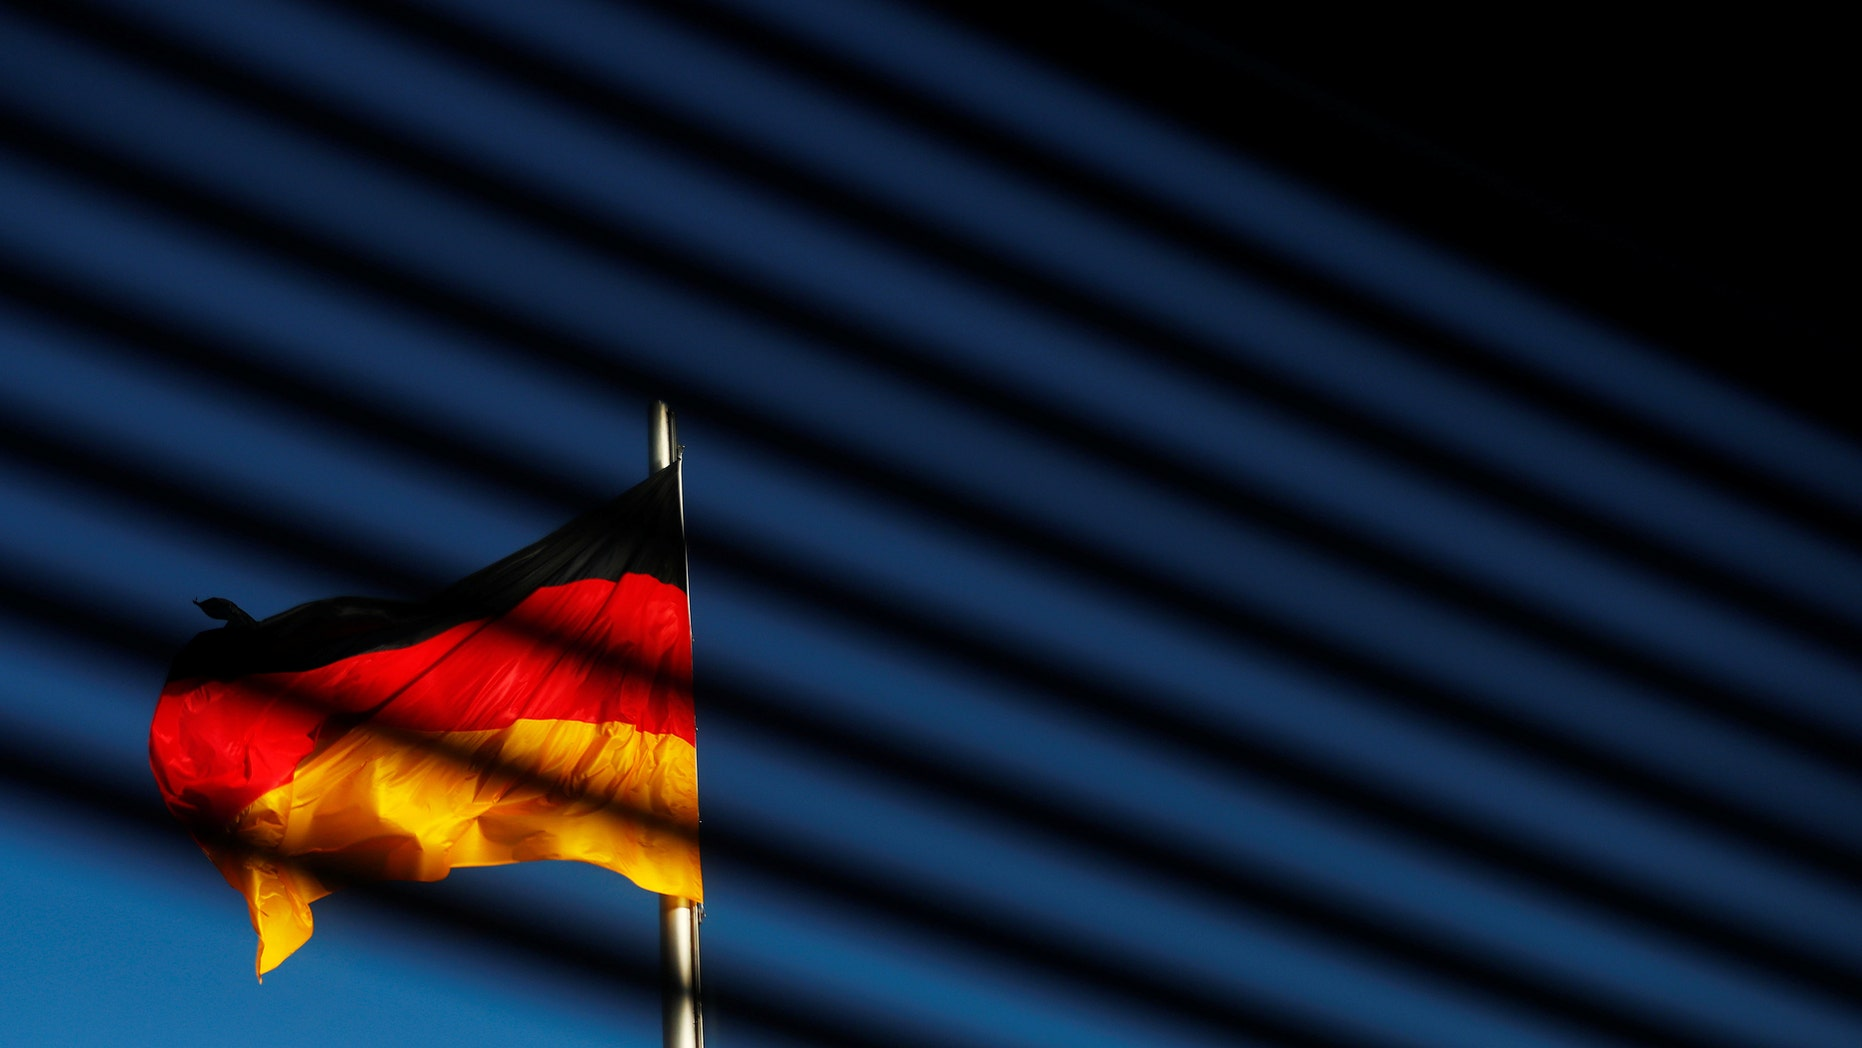 File photo - The German flag is pictured at the Reichstag building  in Berlin, Germany, Nov. 7, 2017. (REUTERS/Hannibal Hanschke)